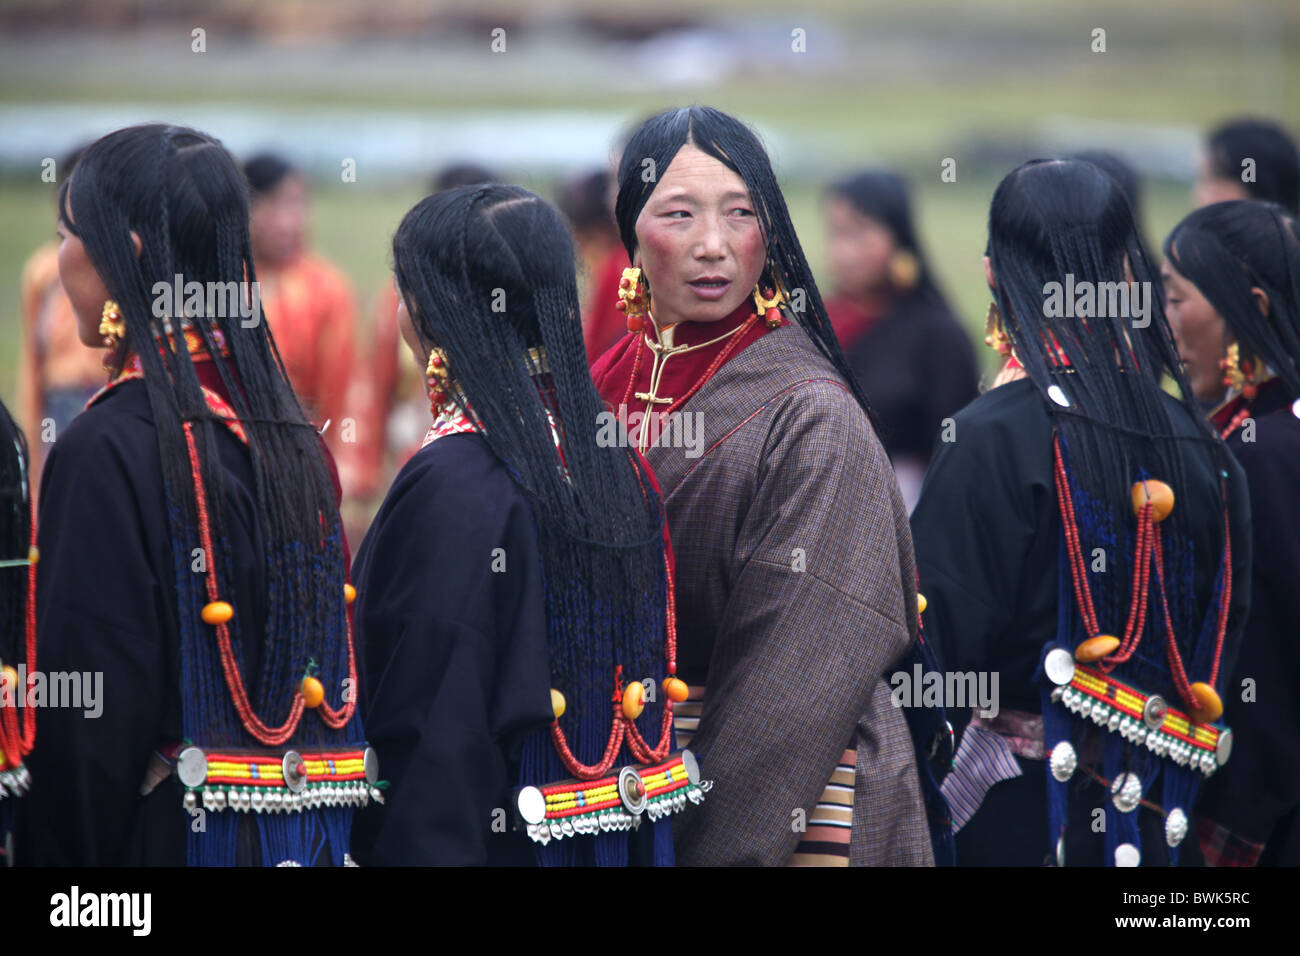 Traditionally dressed women at a local festival in the countryside near Litang, Sichuan province, southwest China - Stock Image